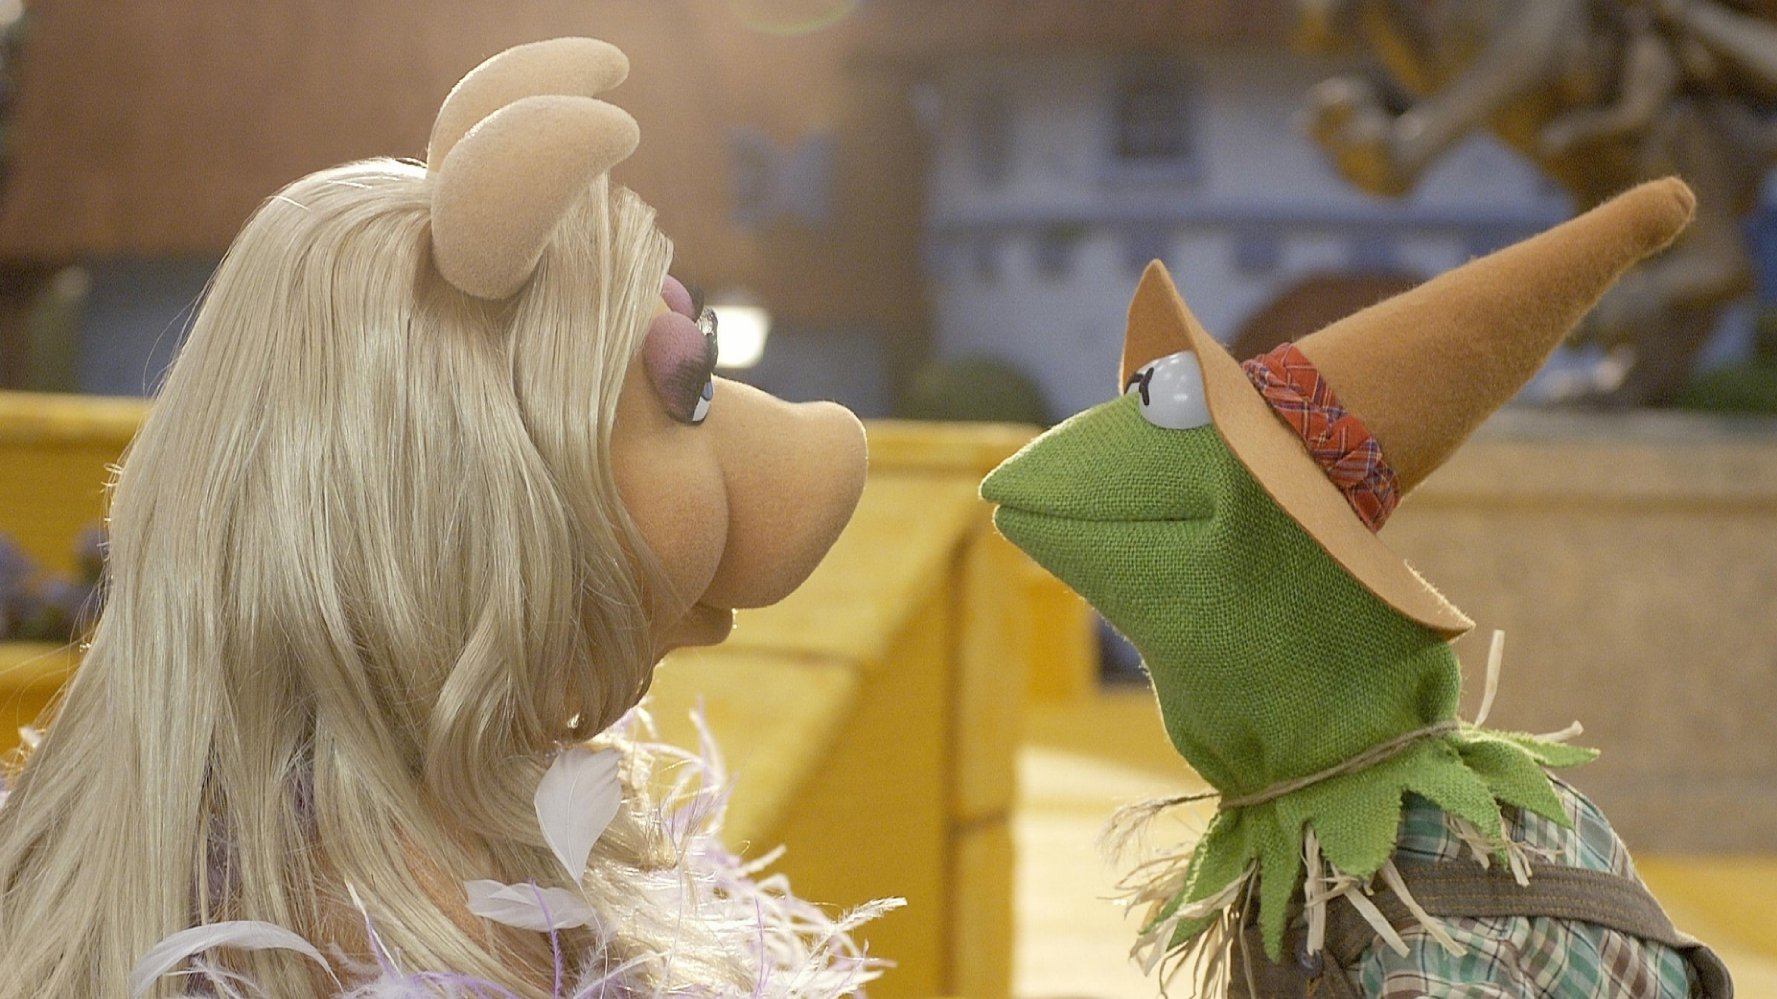 The Muppets Wizard of Oz - Part 1